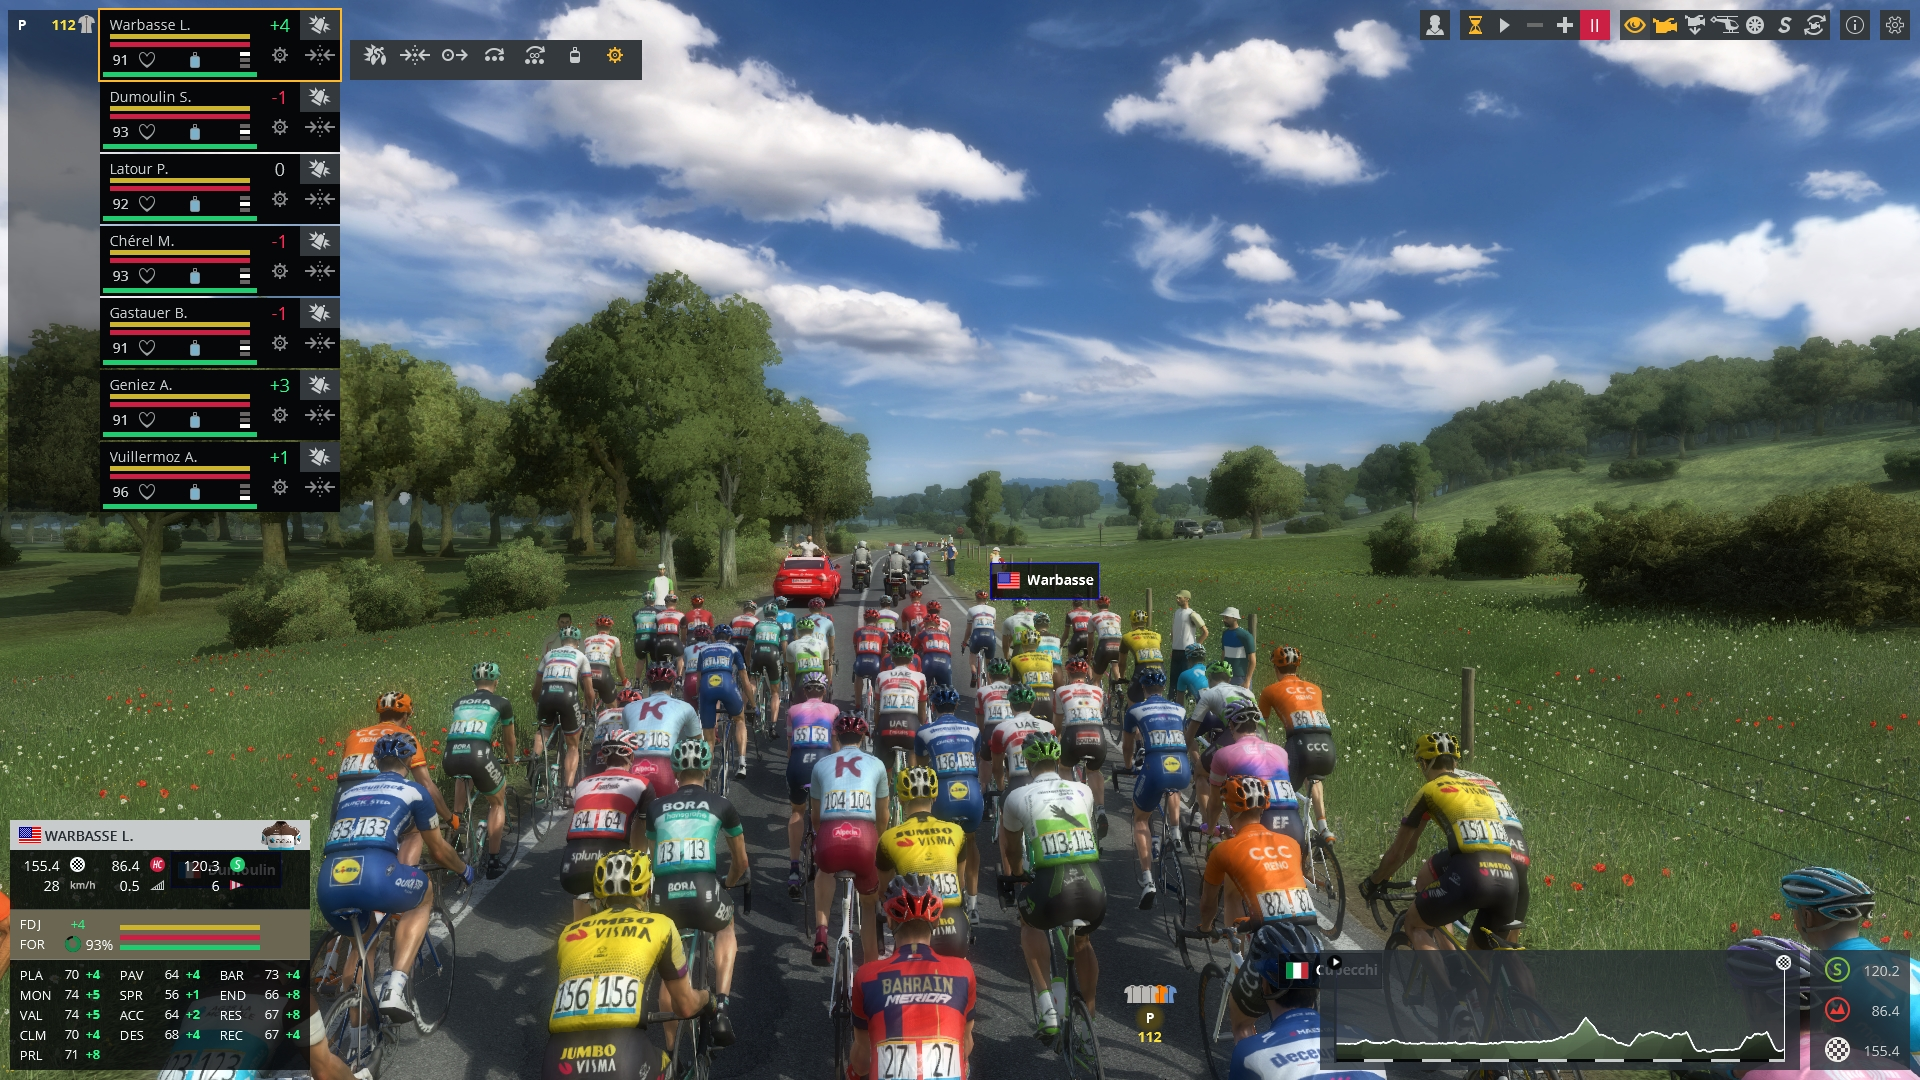 Pro Cycling Manager 2019 Apk iOS Latest Version Free Download